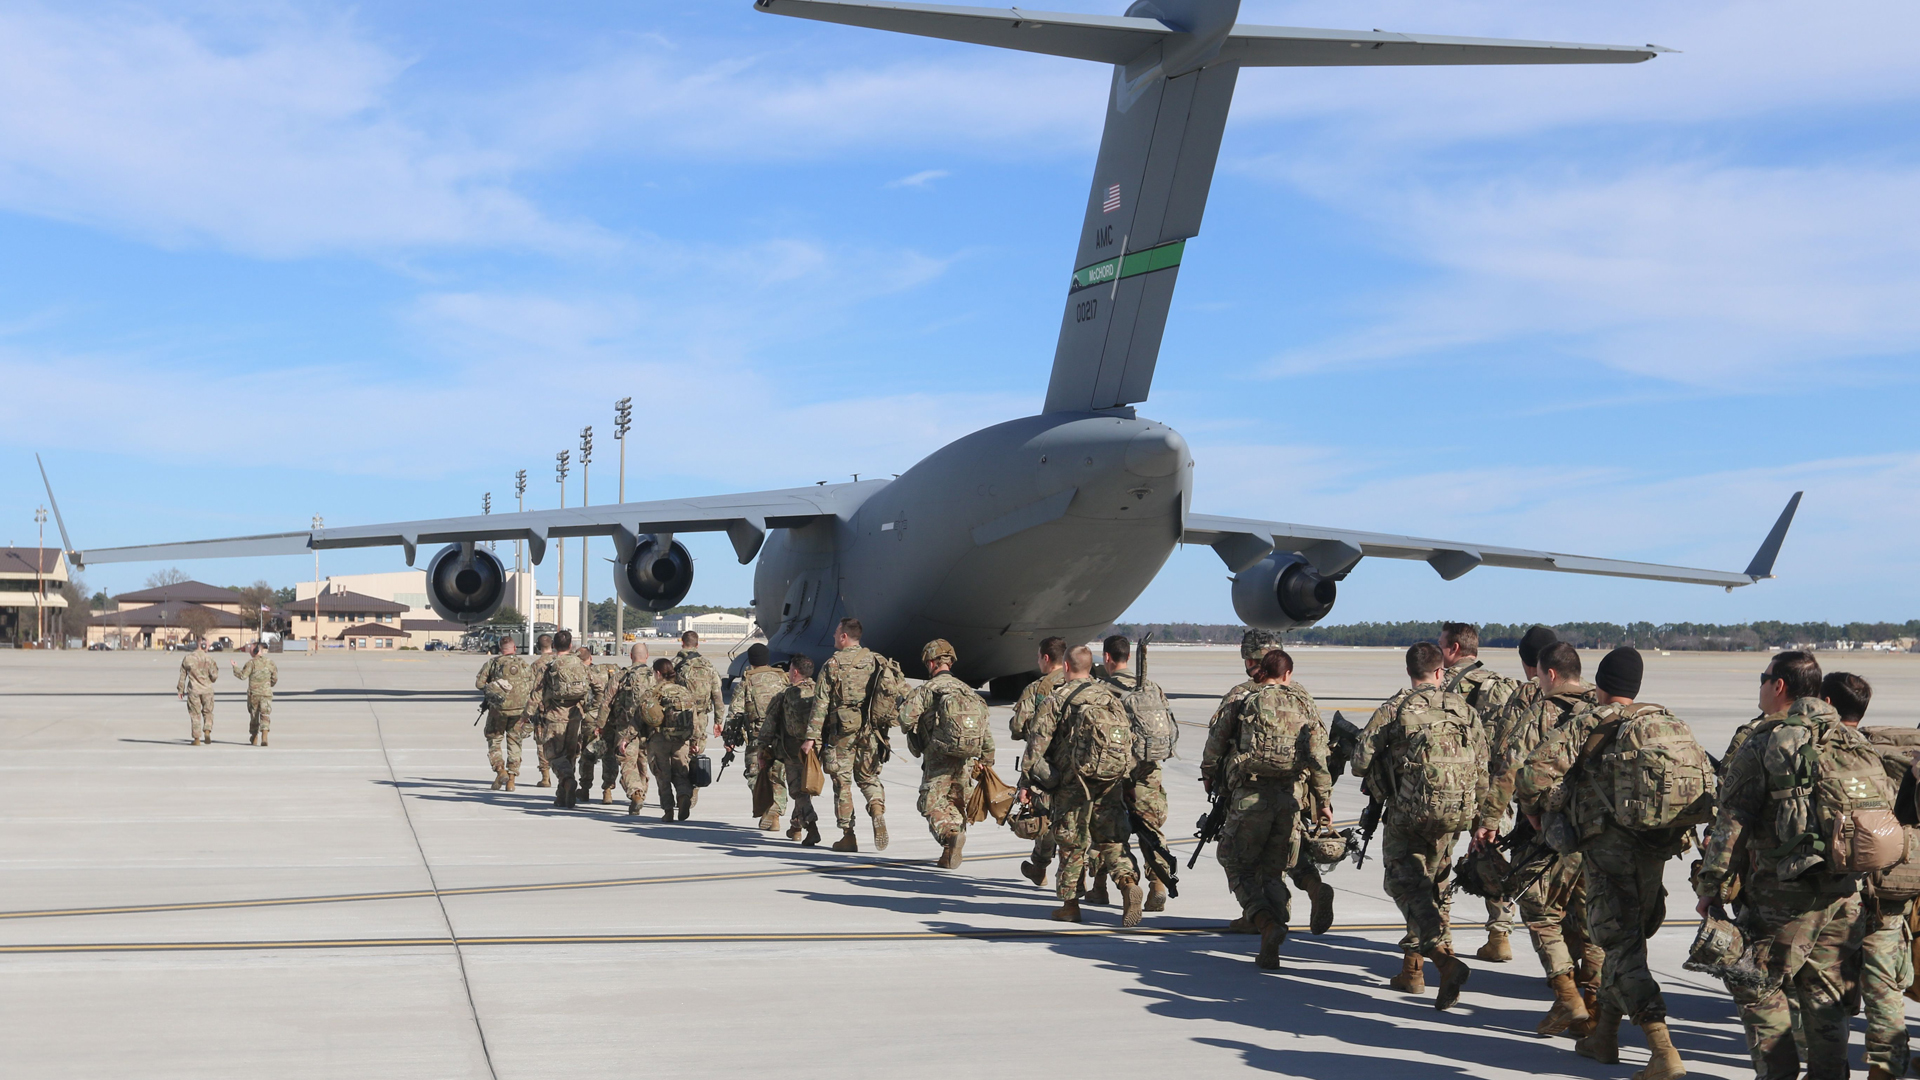 This handout picture released by the U.S. Army shows paratroopers assigned to the 2nd Battalion, 504th Parachute Infantry Regiment, 1st Brigade Combat Team, 82nd Airborne Division, deploy from Pope Army Airfield, North Carolina, on Jan. 1, 2020. (Credit: CAPT. ROBYN HAAKE/US ARMY/AFP via Getty Images)